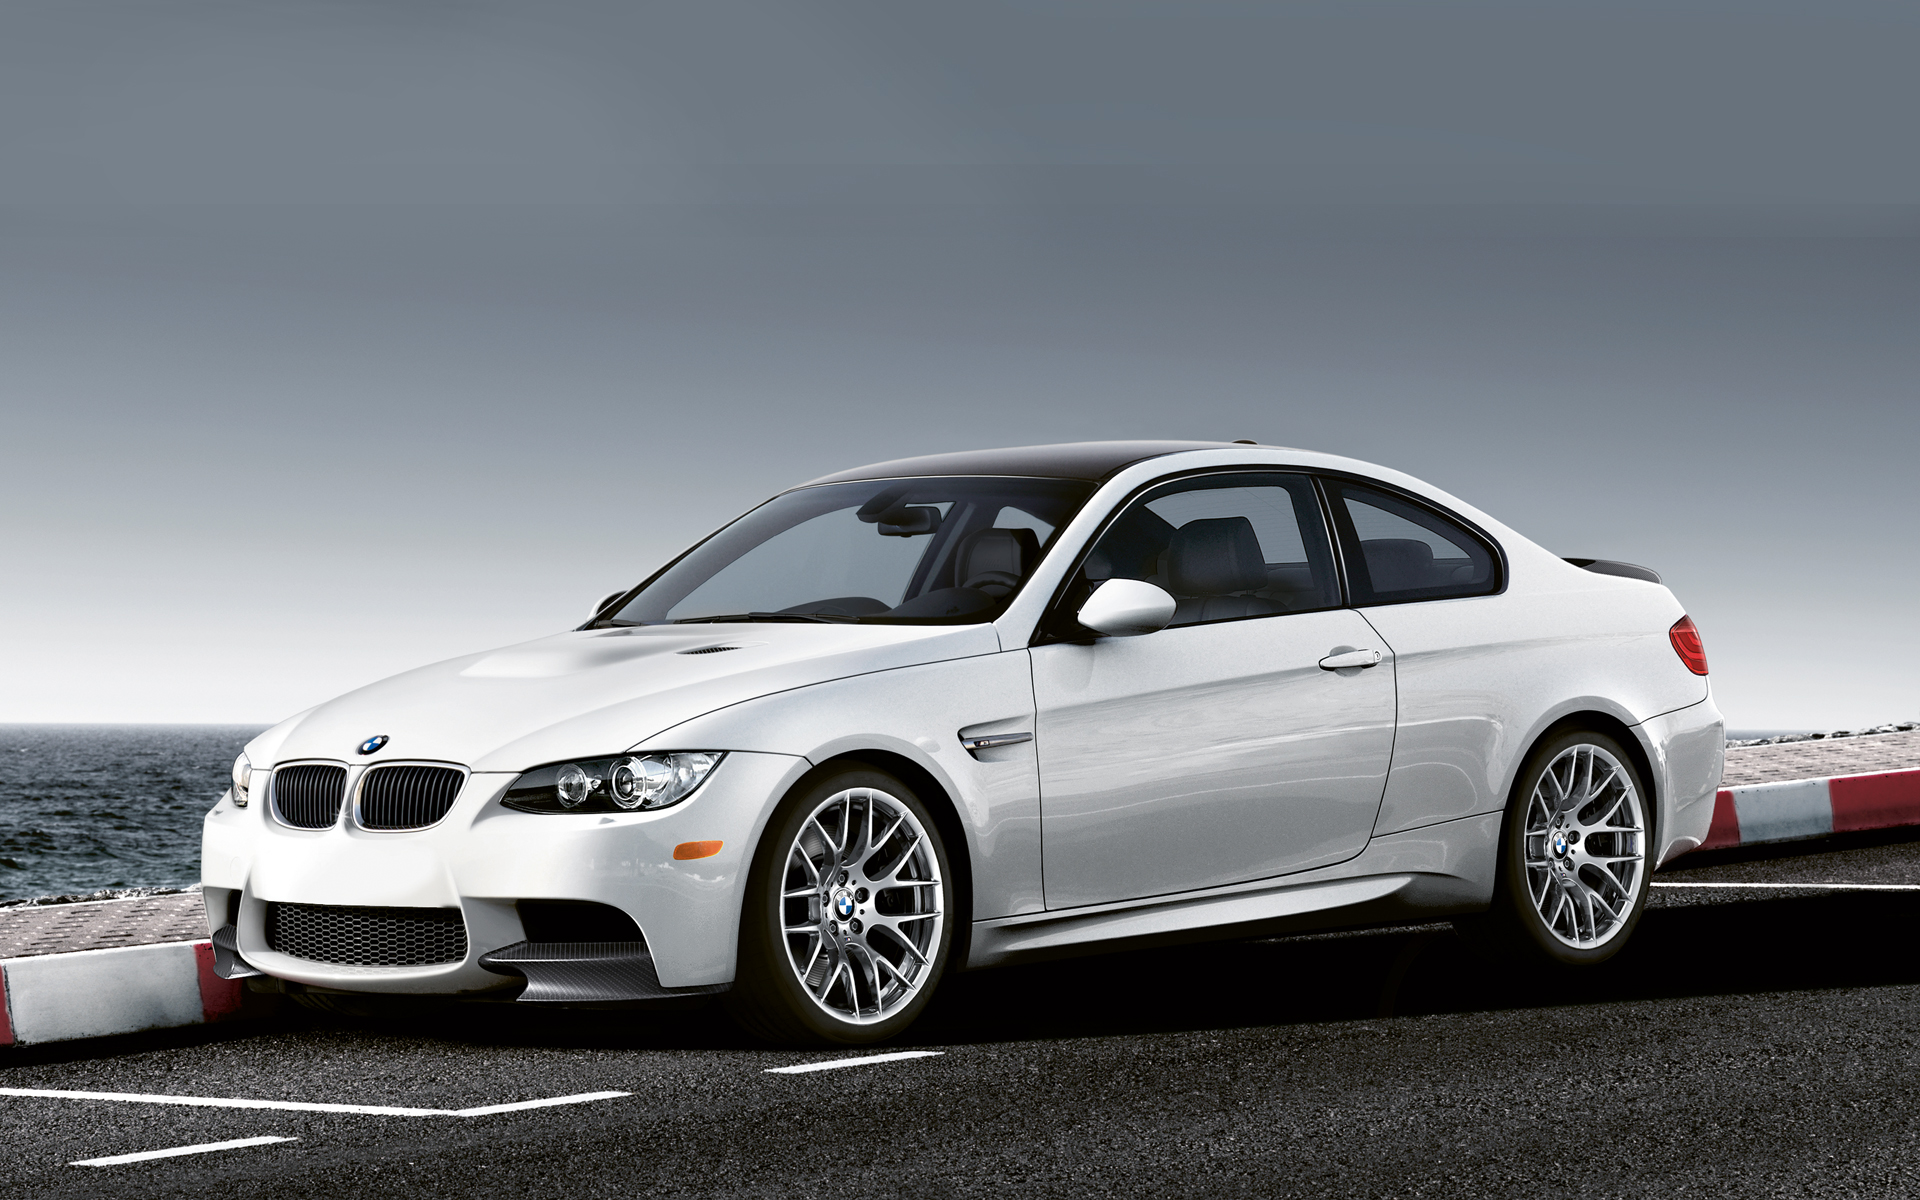 The Bmw E92 M3 Is Completely Sold Out With New M3 M4